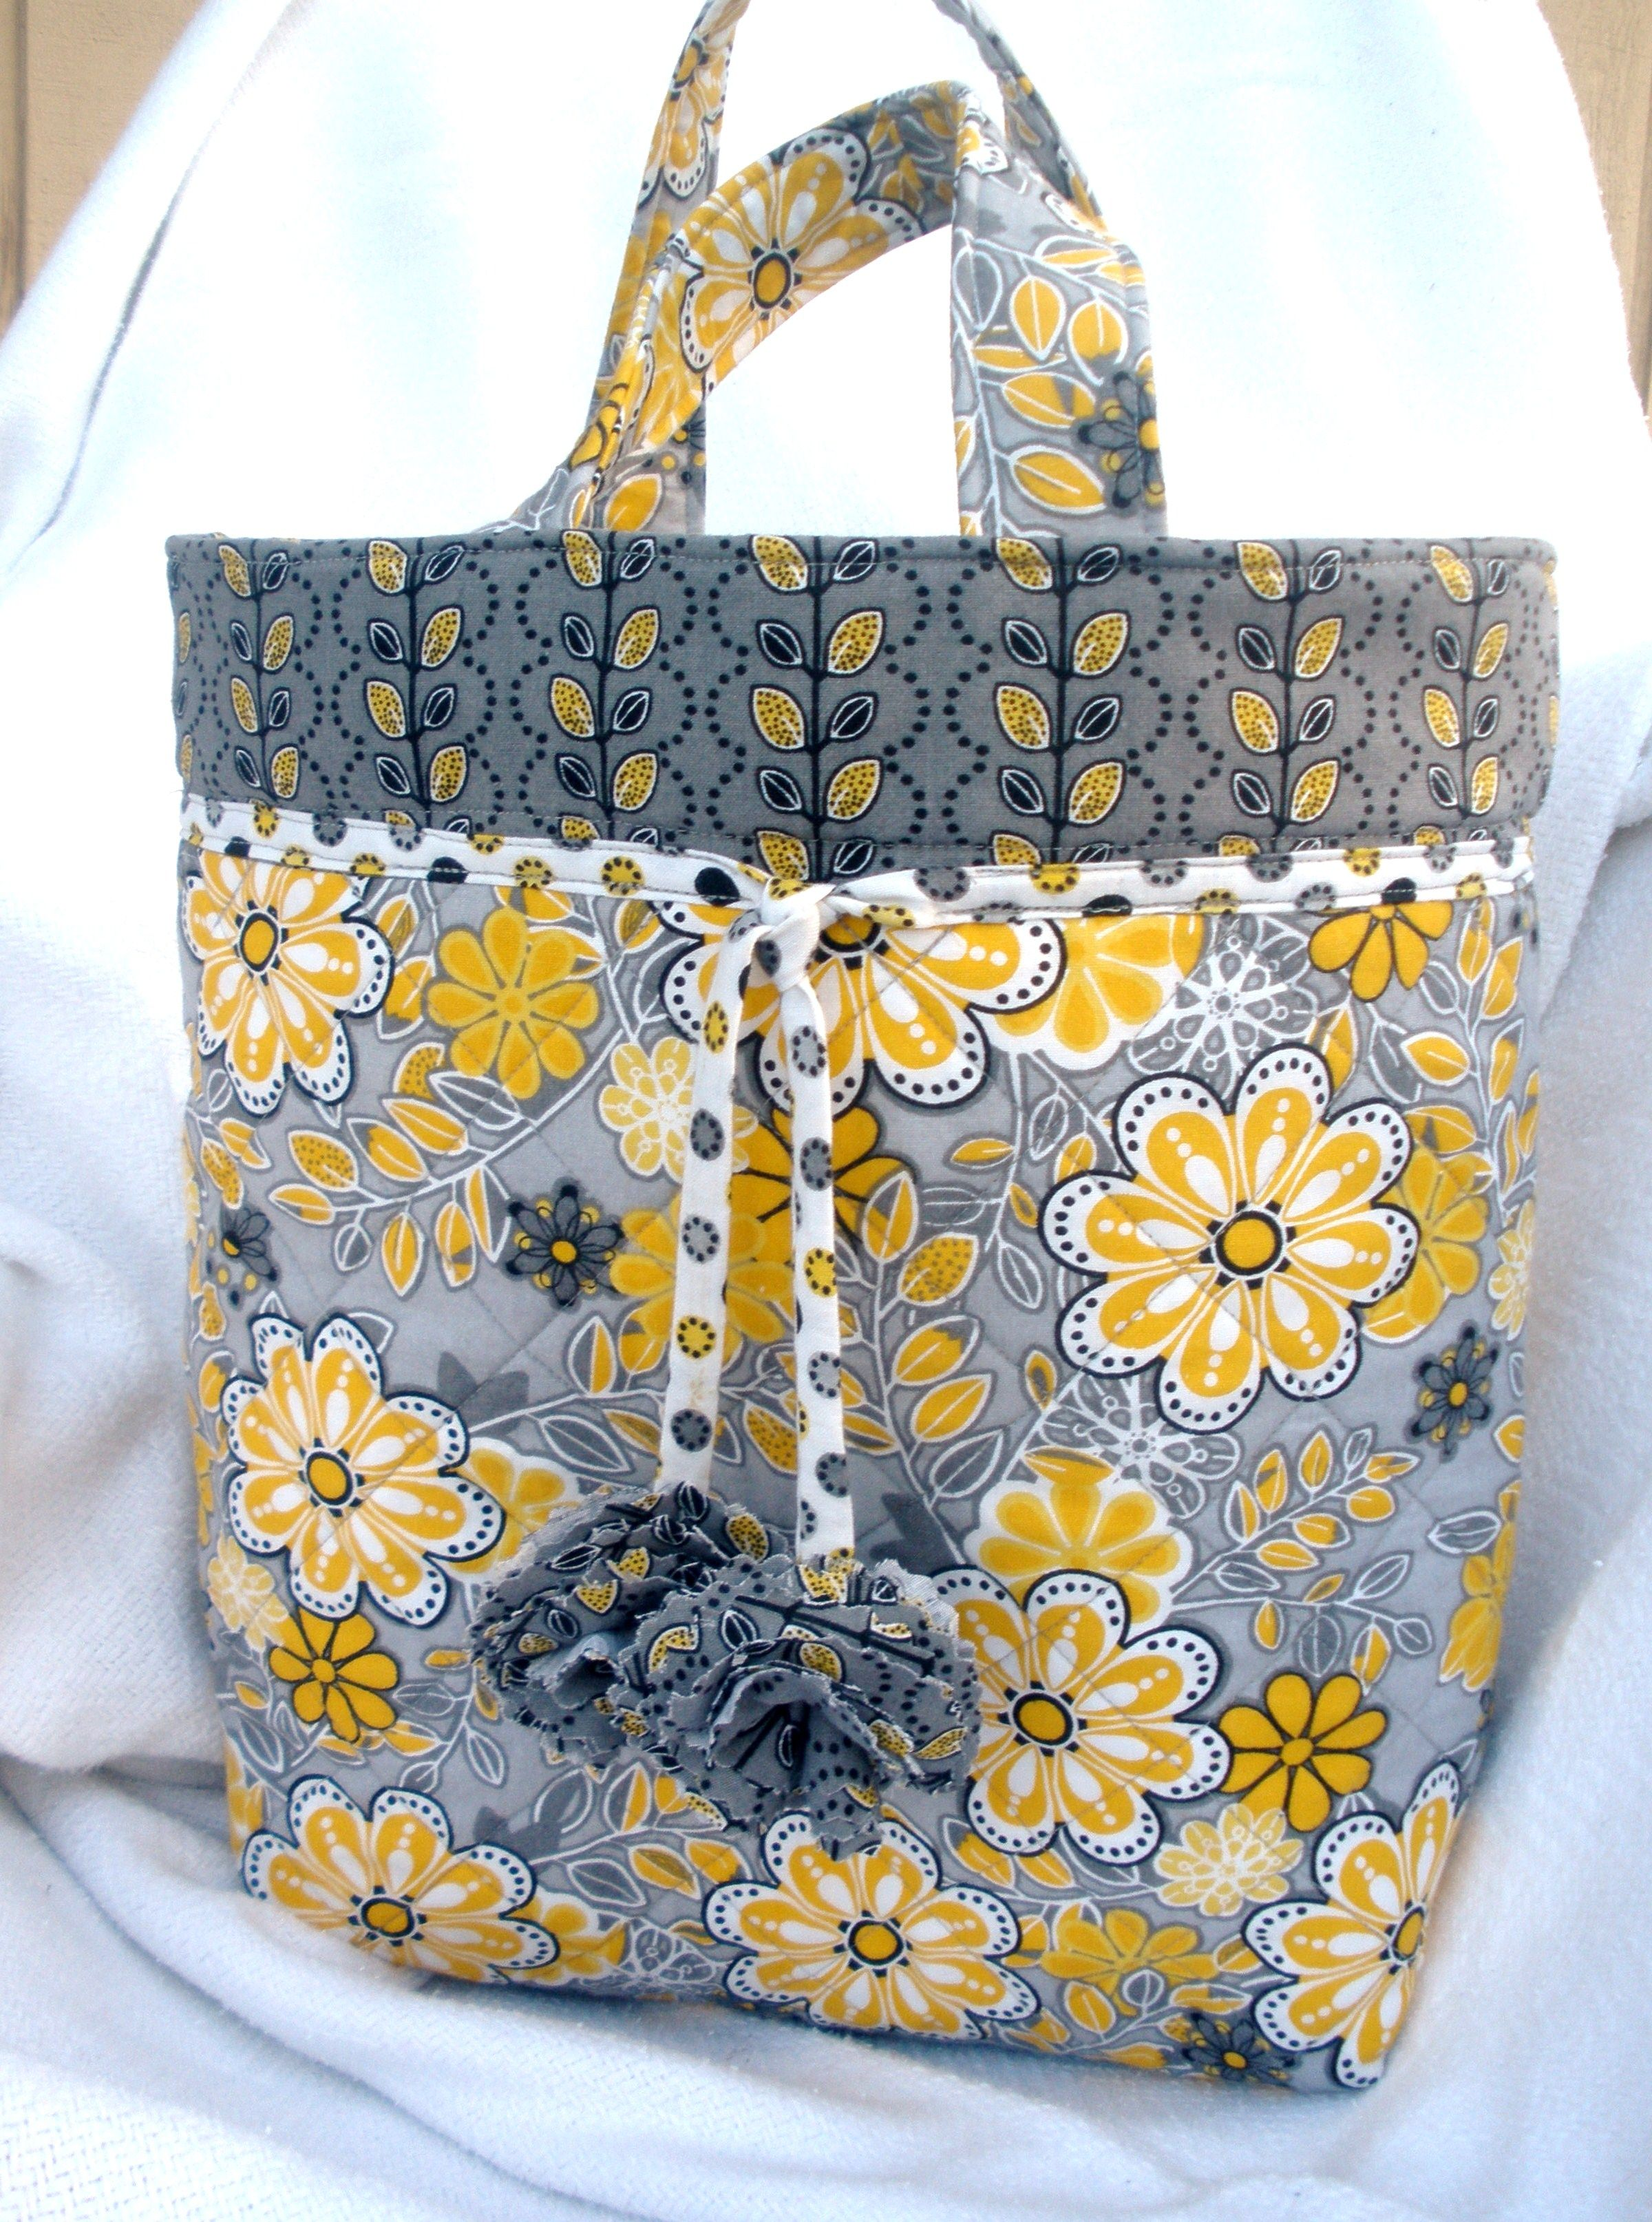 Free Quilted Tote Bag Pattern | Sewing projects, Tutorials and Free : how to make quilted tote bags - Adamdwight.com